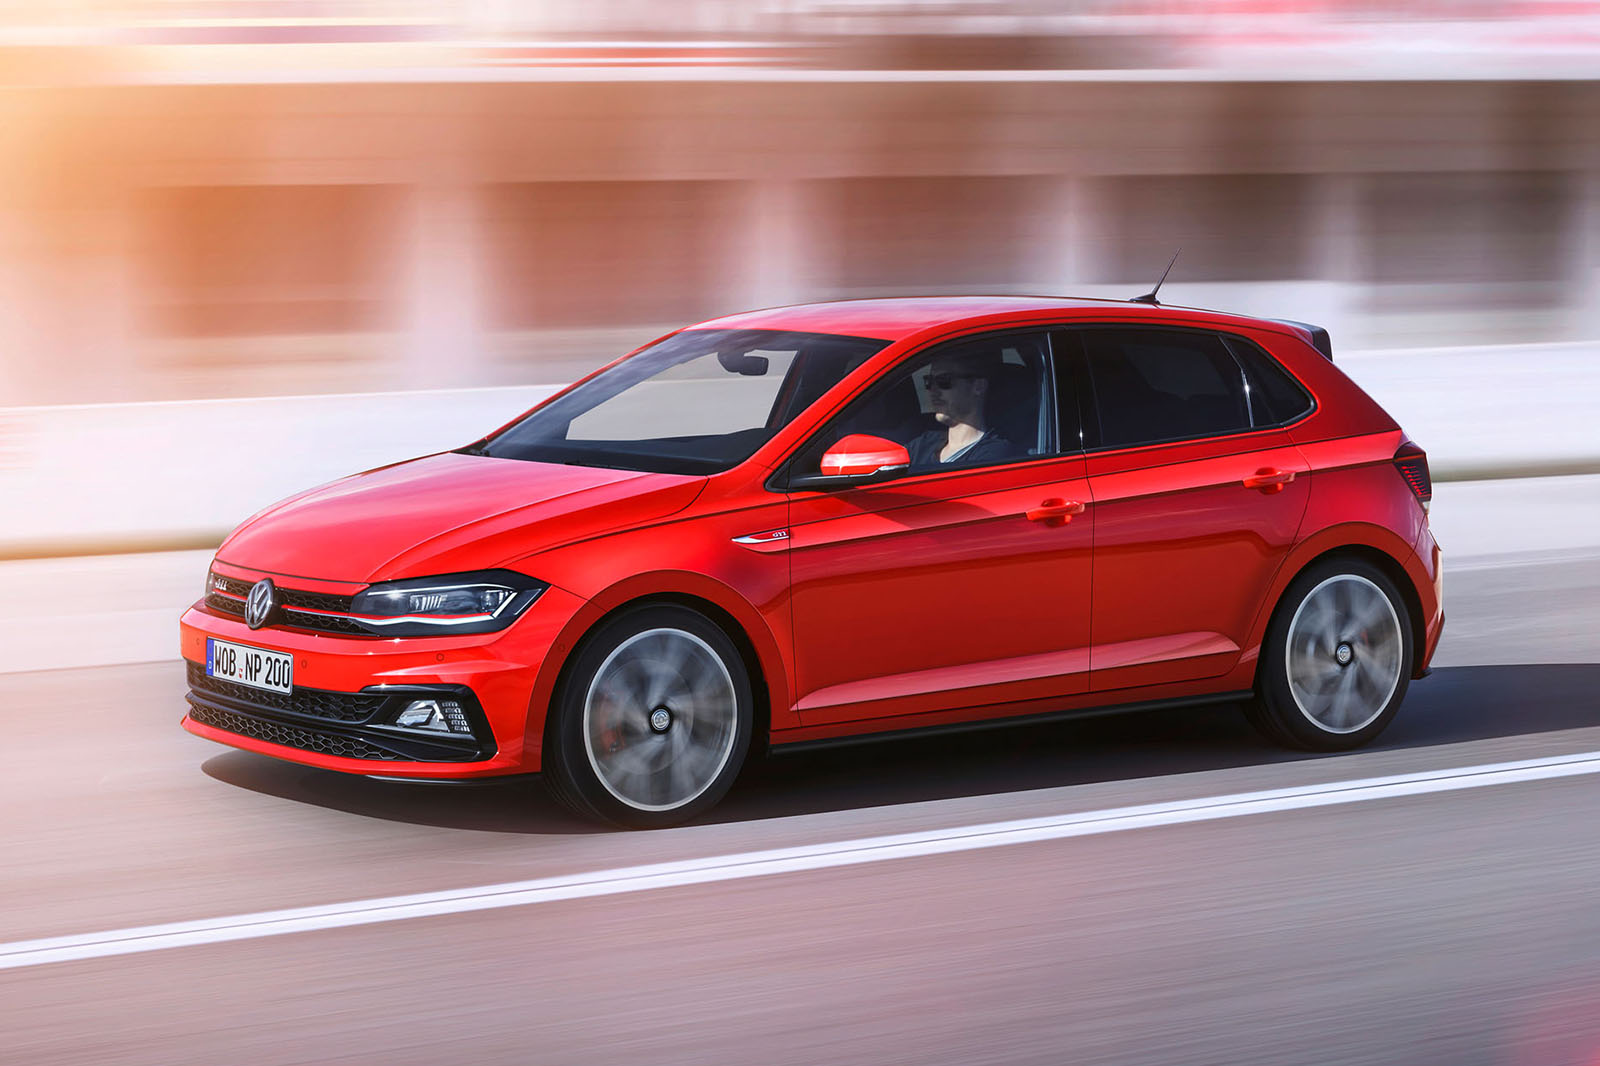 VW polo vw : 2017 Volkswagen Polo available for order priced from £13,885 | Autocar